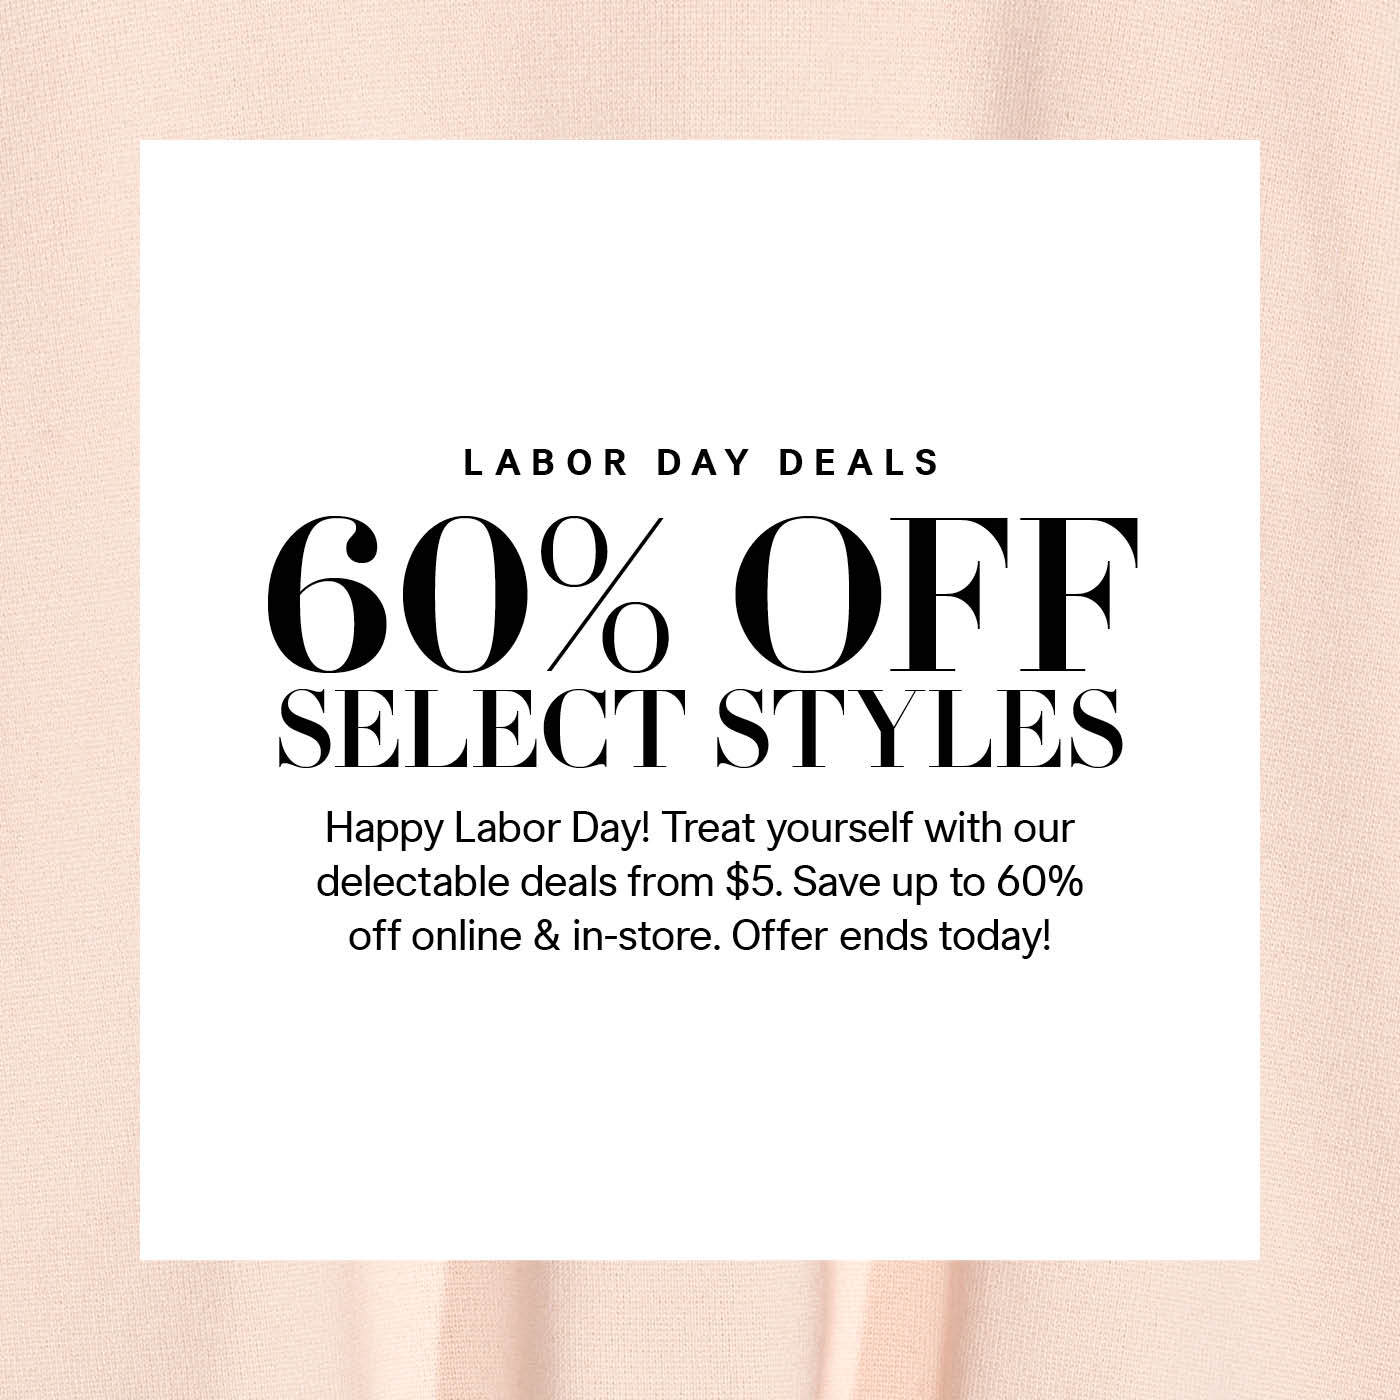 H&M Labor Day Sale